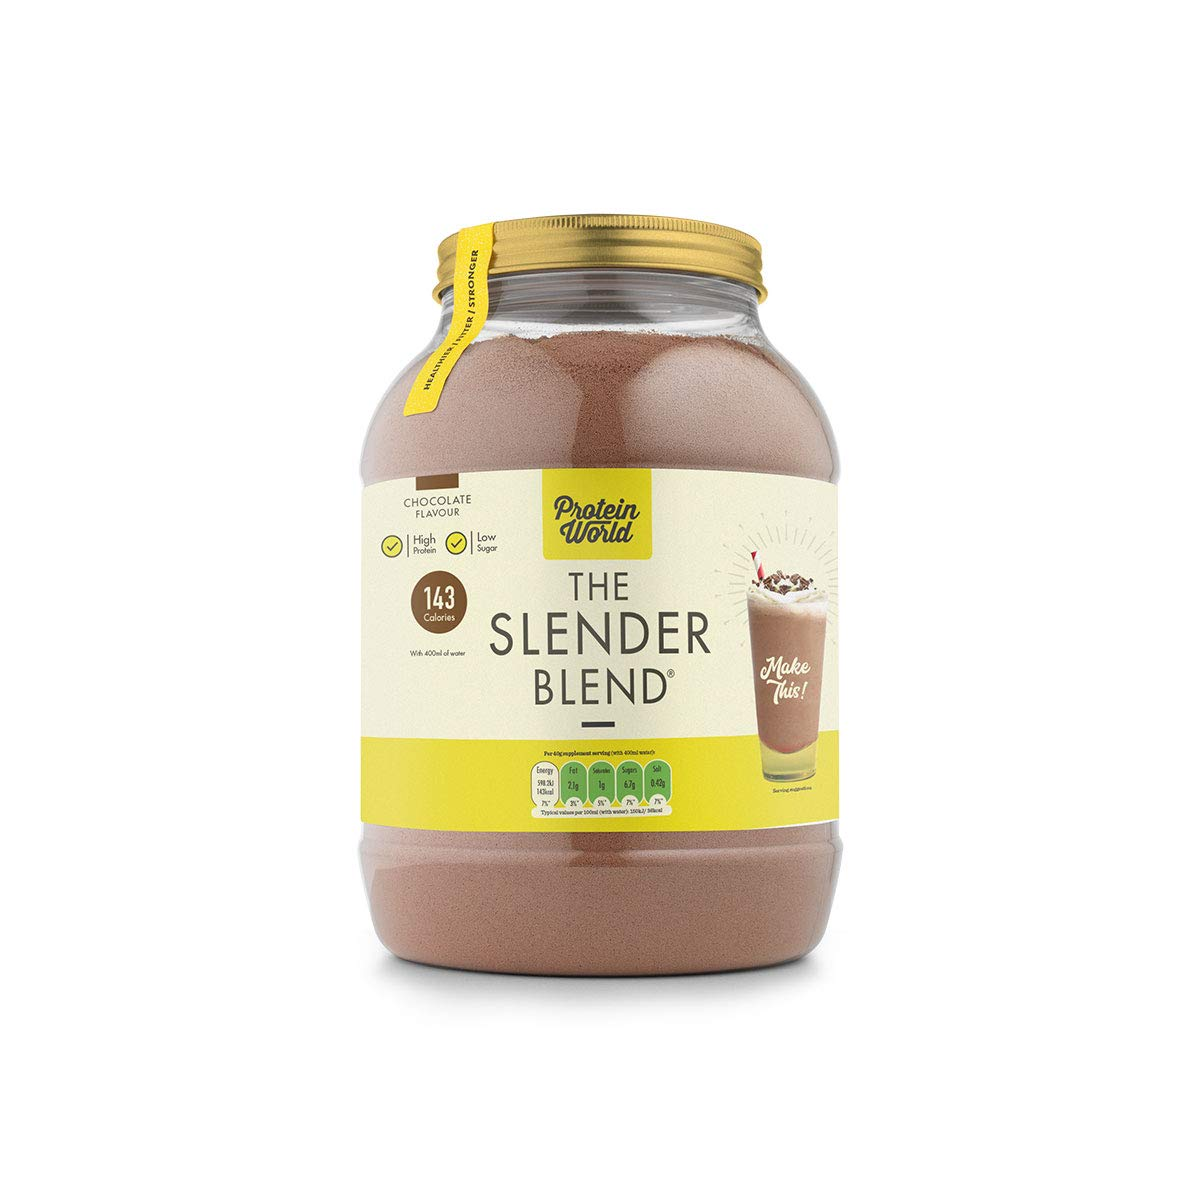 4c3787f0db ... Gluten Free, Soy Free, Kosher, Halal, 143 calories per serving, High in  Protein, Meal Replacement, Post Work-Out Shake- Chocolate Flavour 2.6 LBS  …e: ...